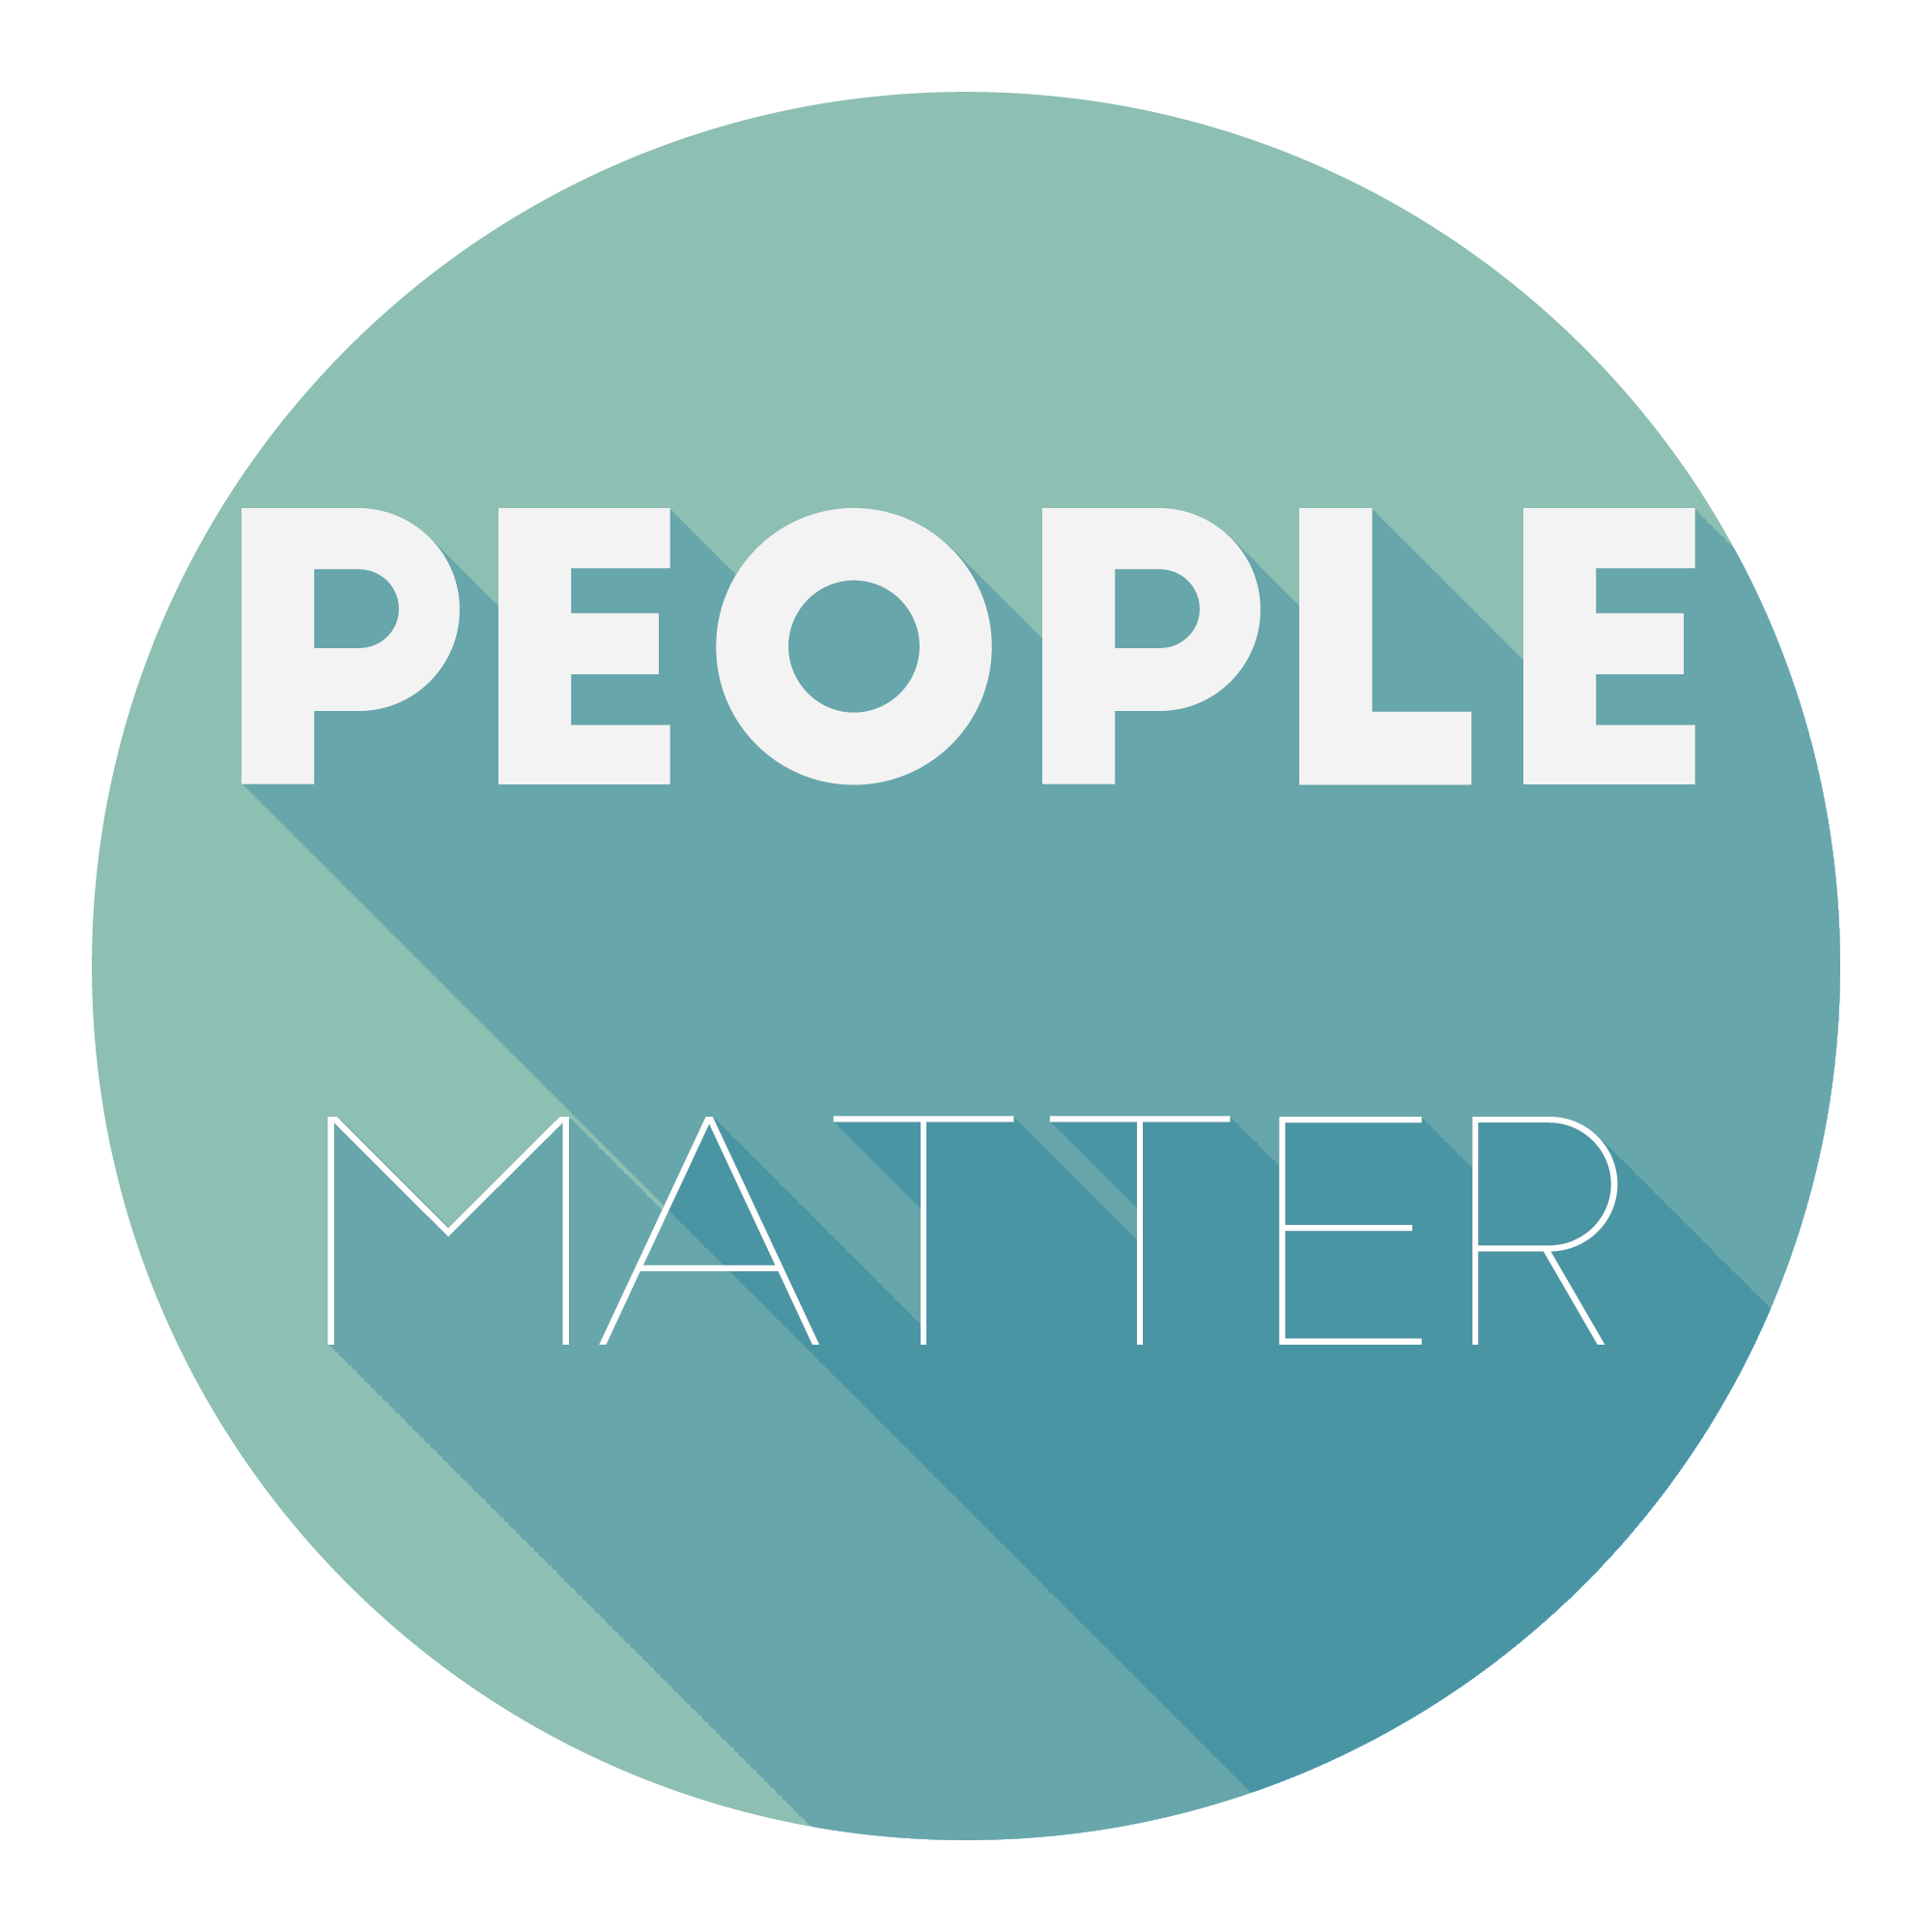 people-matter-icon-02.png